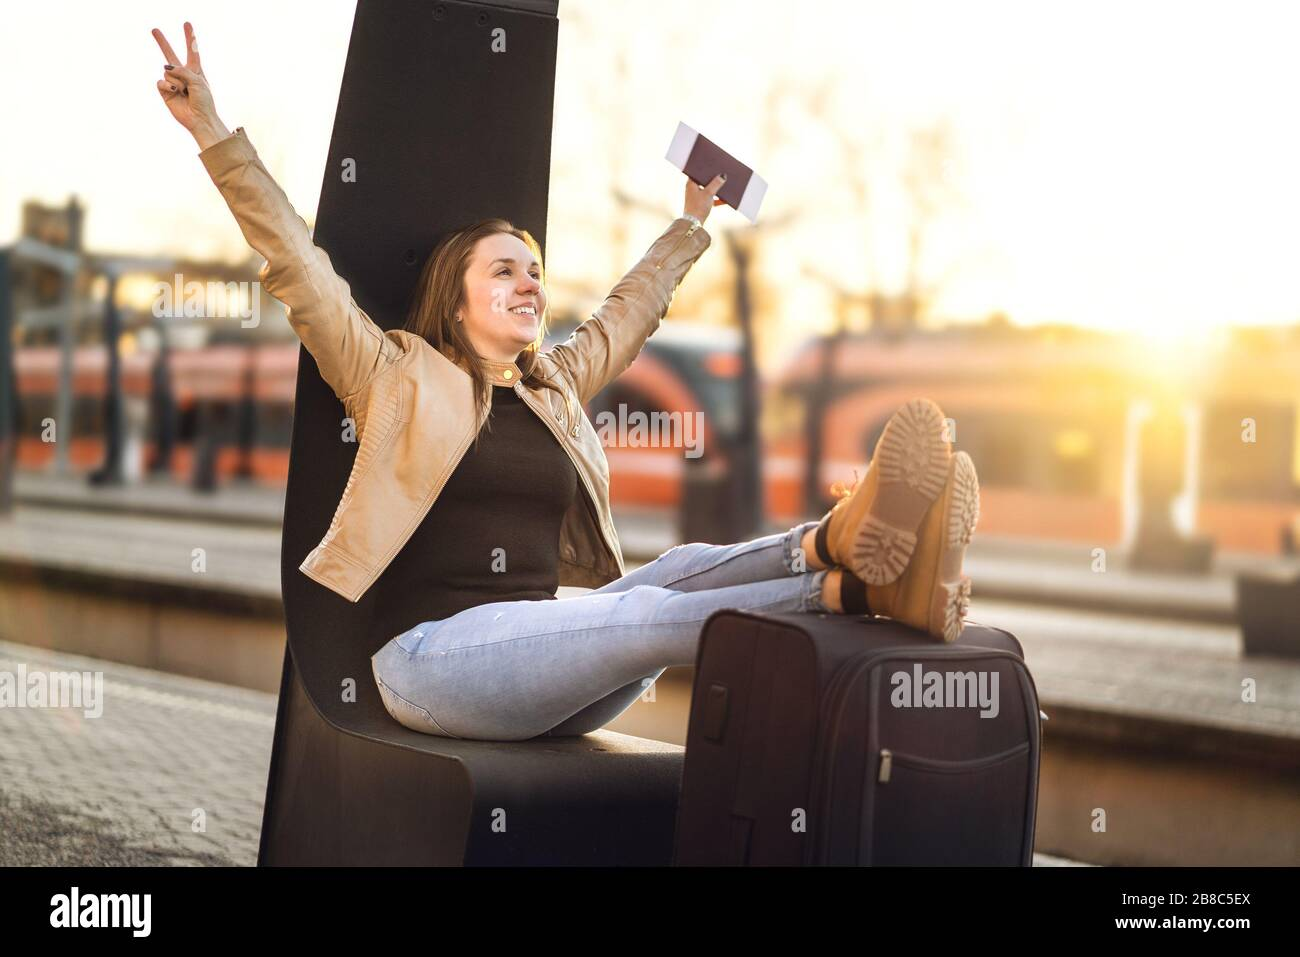 Finally on vacation. Woman celebrating at train station to leave on fun trip. Happy smiling person with legs and shoes on suitcase and luggage. Stock Photo